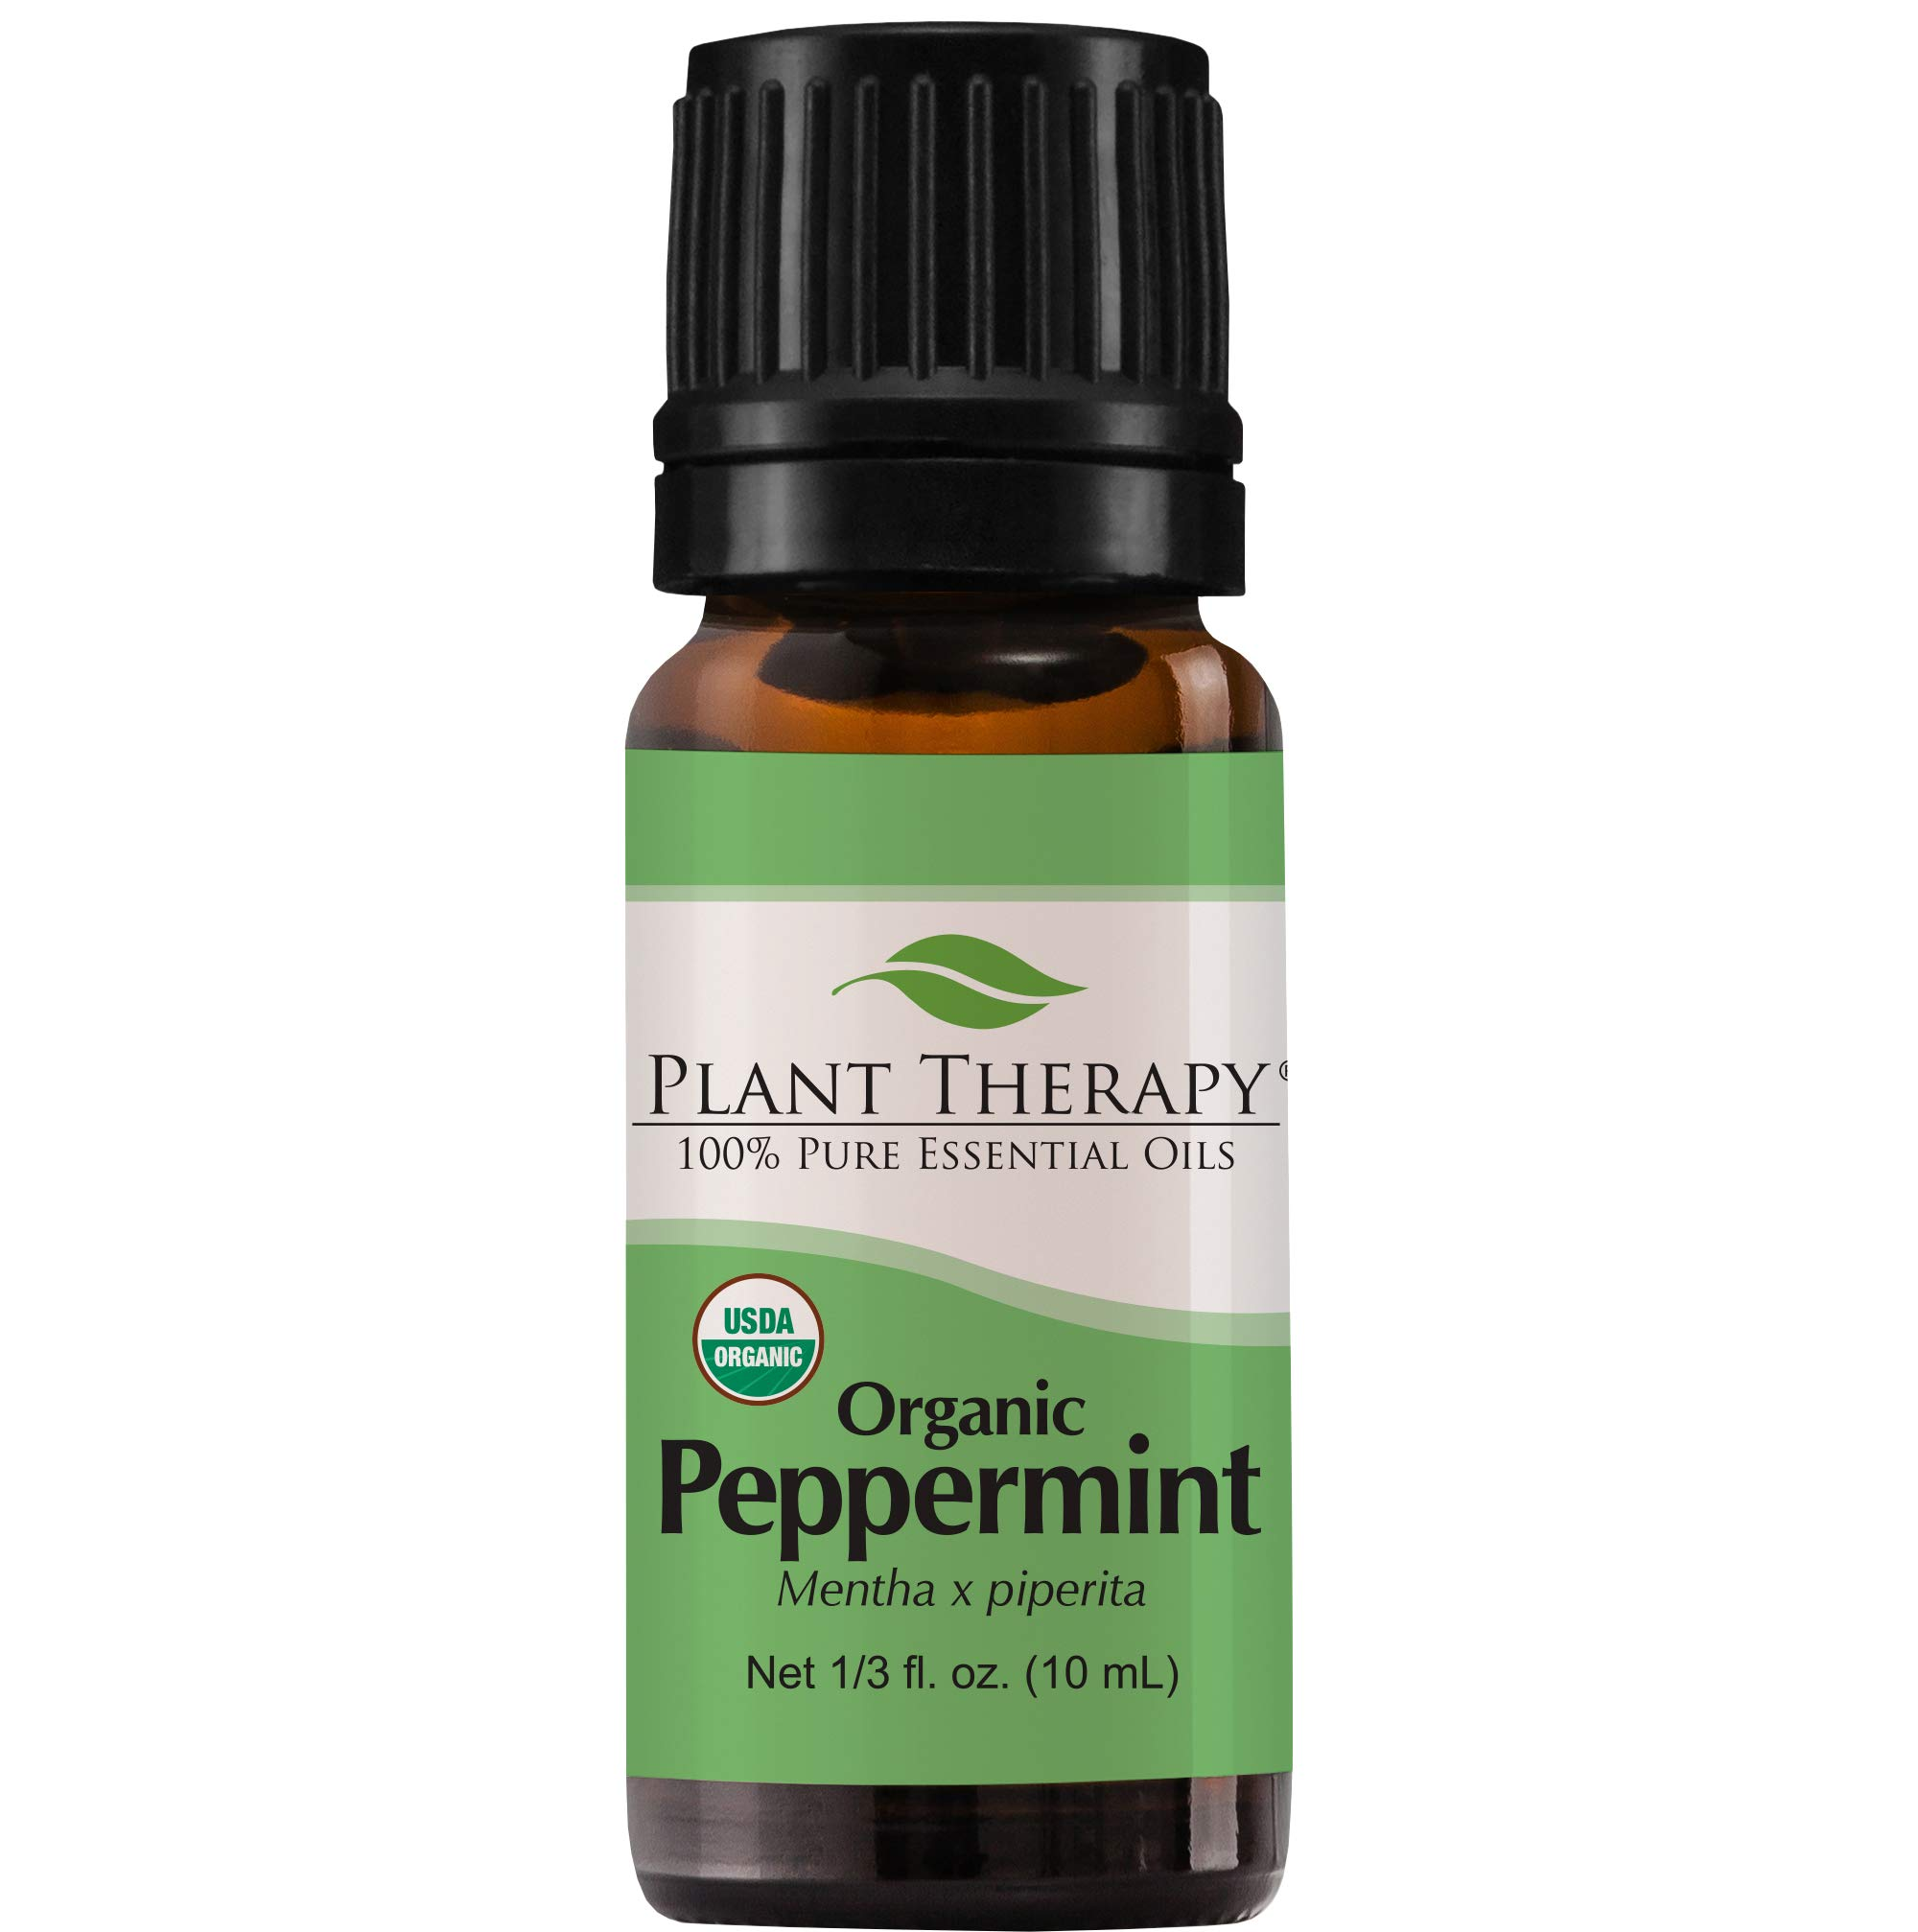 Plant Therapy Peppermint Organic Essential Oil 10 mL (1/3 oz) 100% Pure, Undiluted, Therapeutic Grade